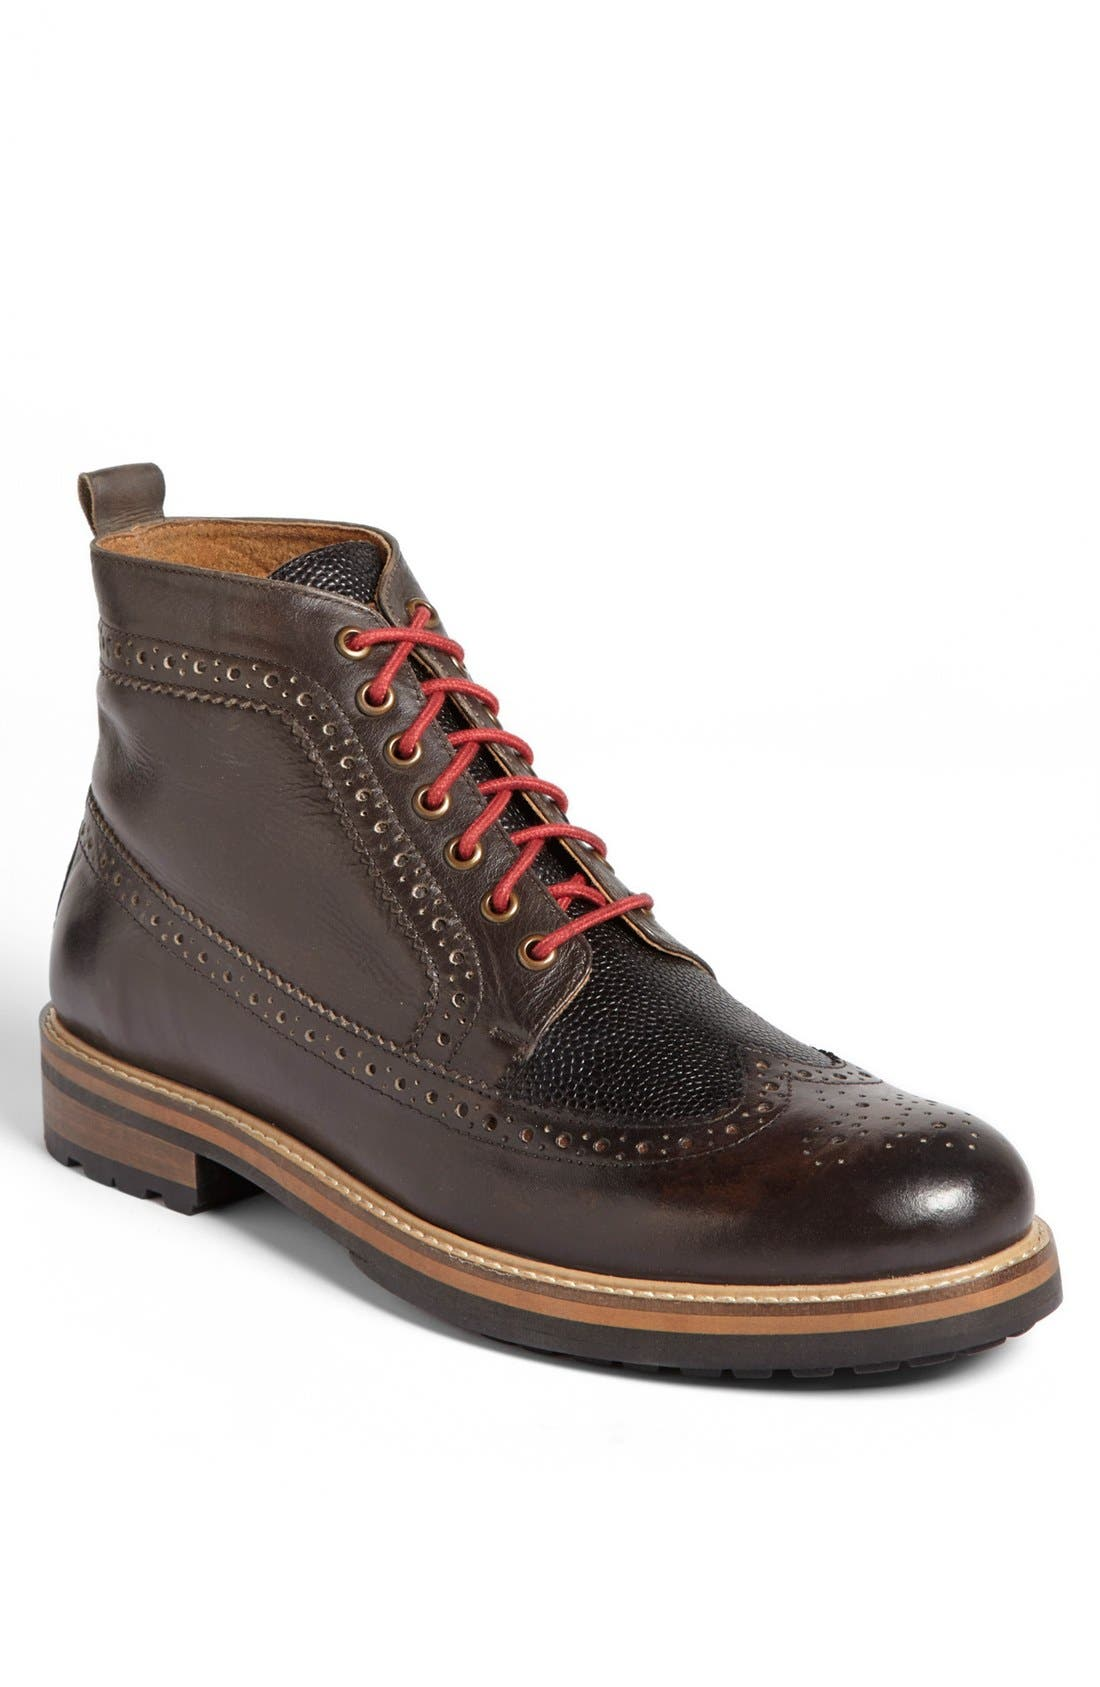 Main Image - Ben Sherman 'Cranston' Boot (Men)